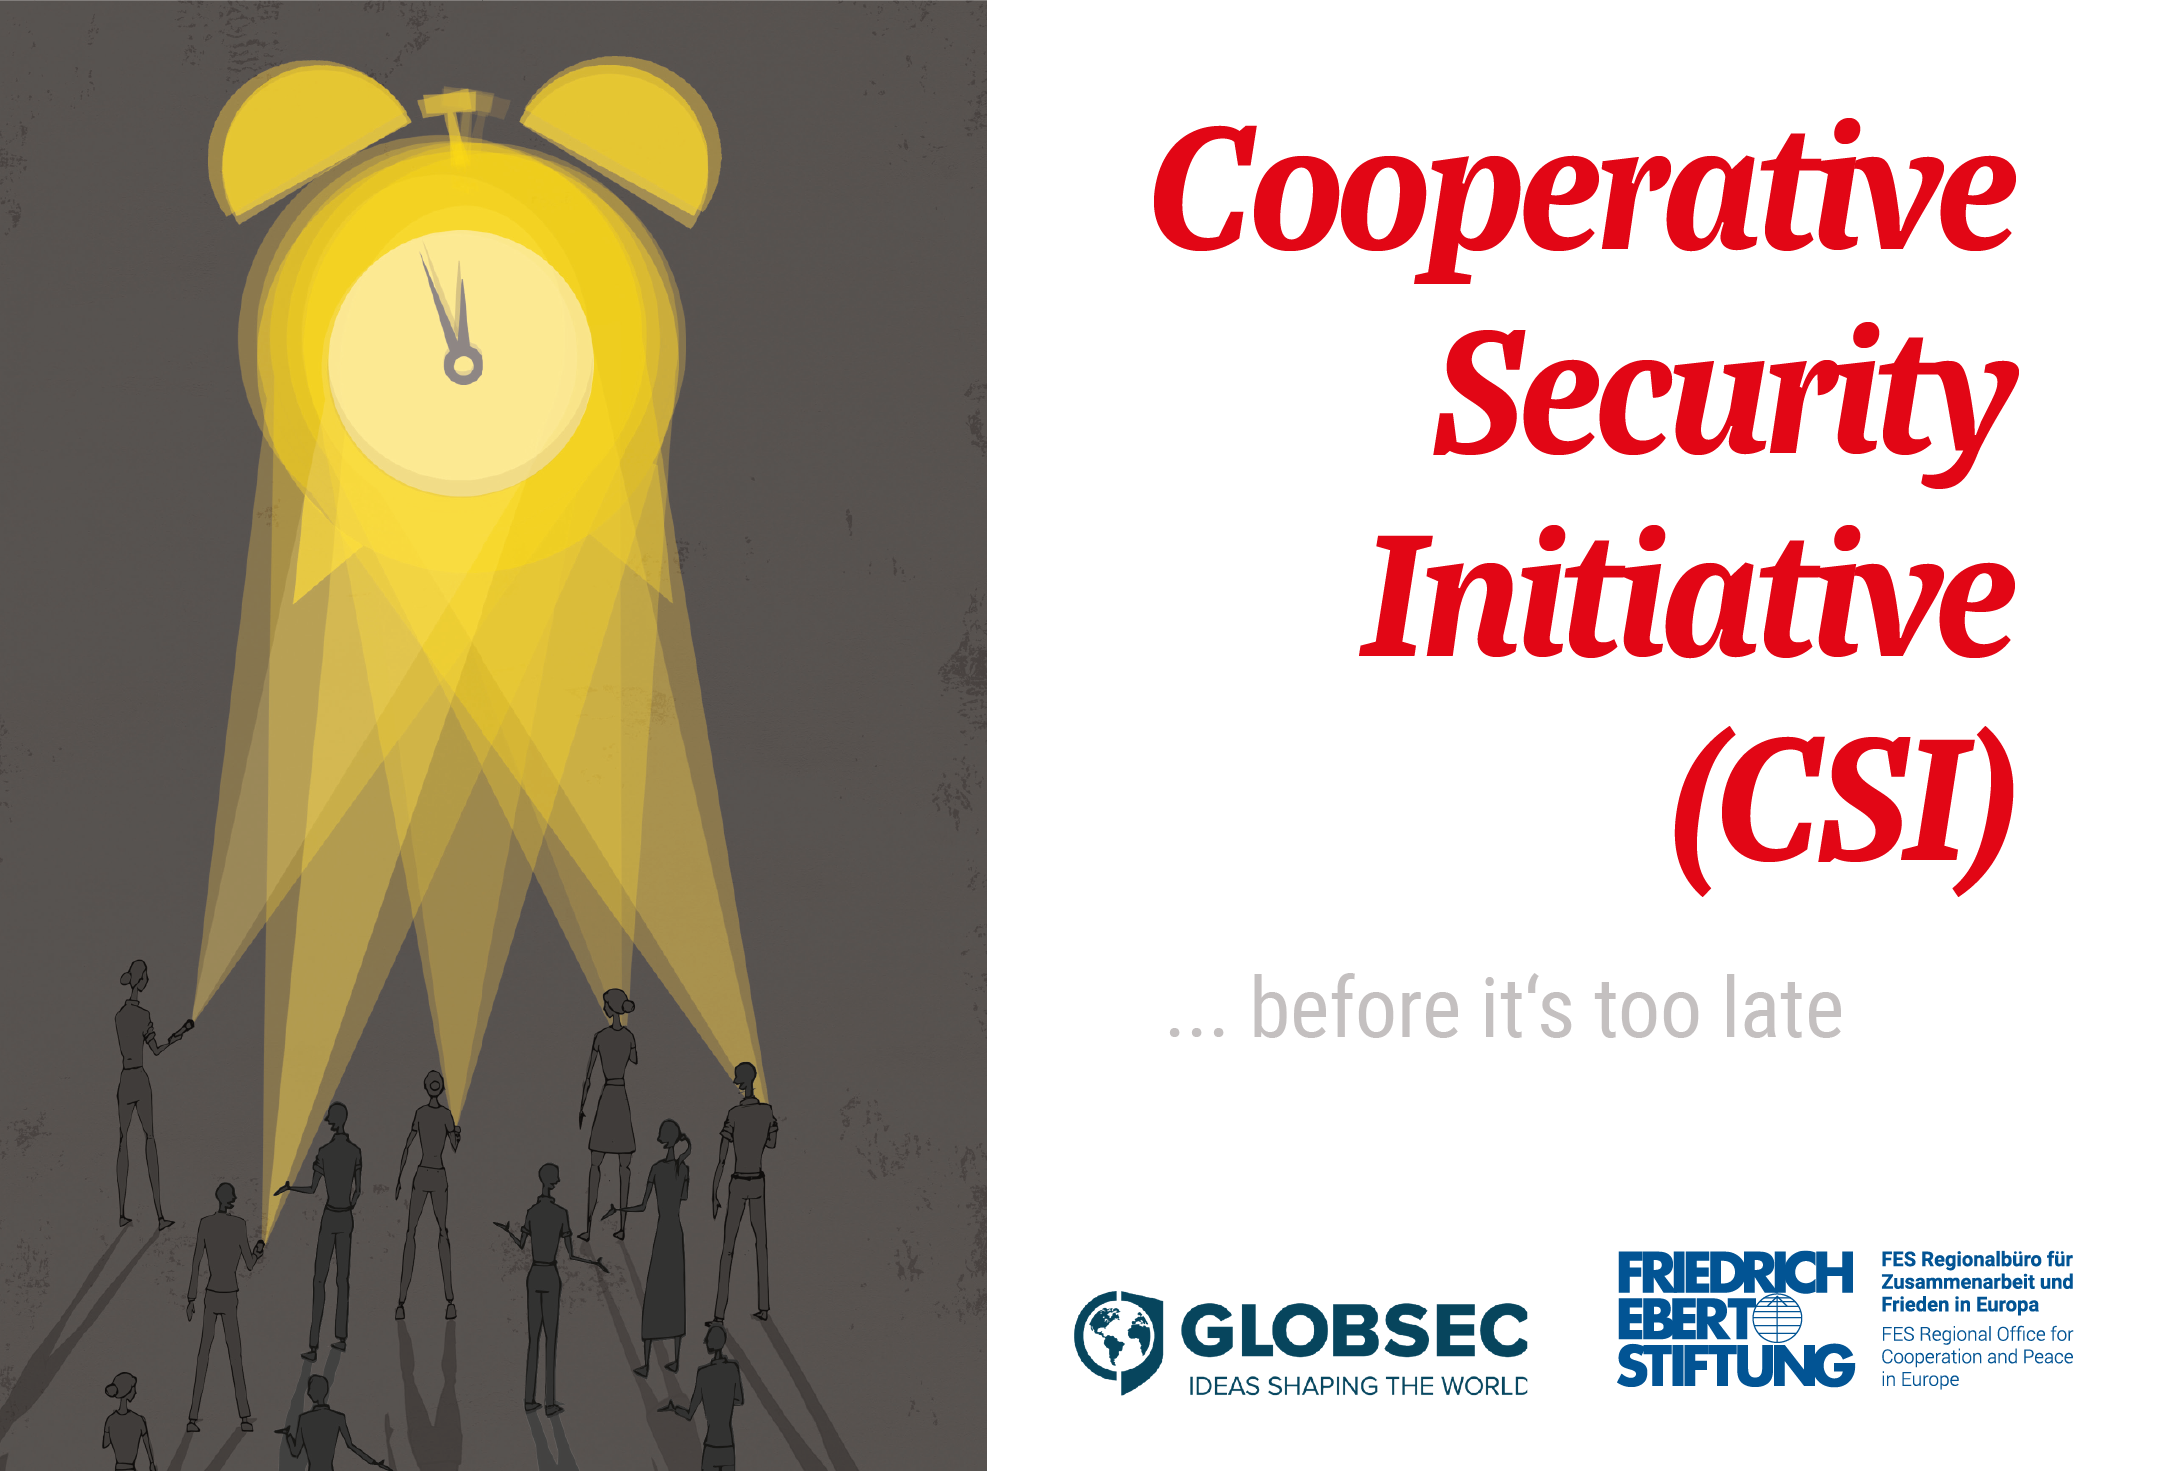 Cooperative Security Initiative - GLOBSEC